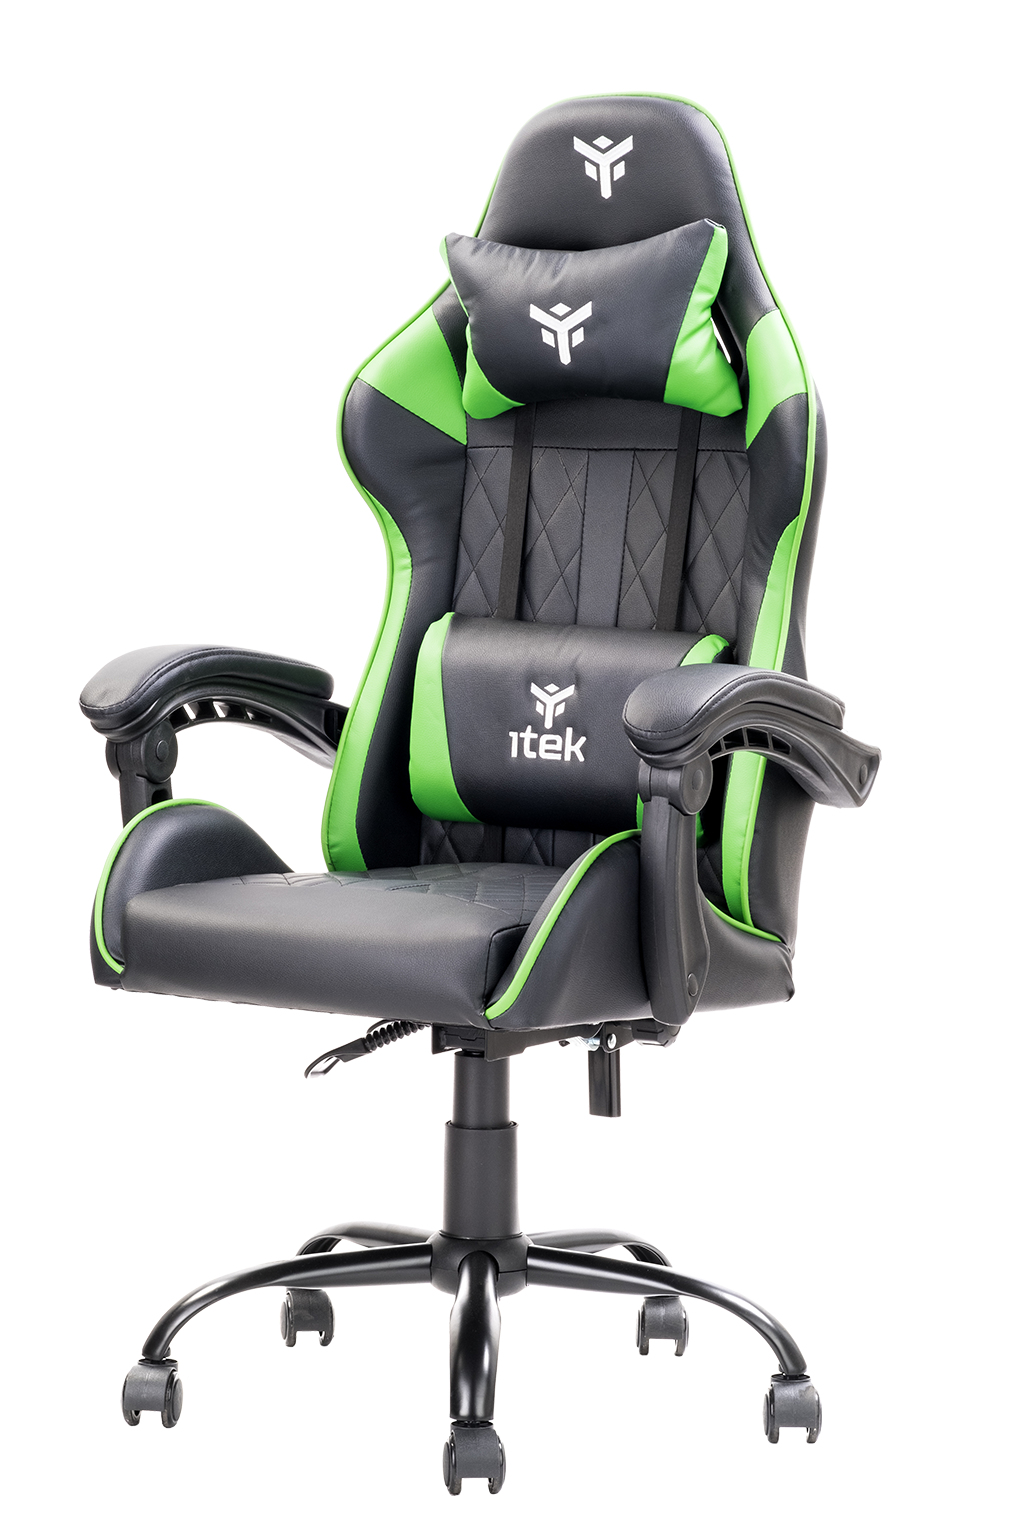 itek Gaming Chair RHOMBUS PF10 - PVC, Doppio Cuscino, Schienale Reclinabile, Nero Verde